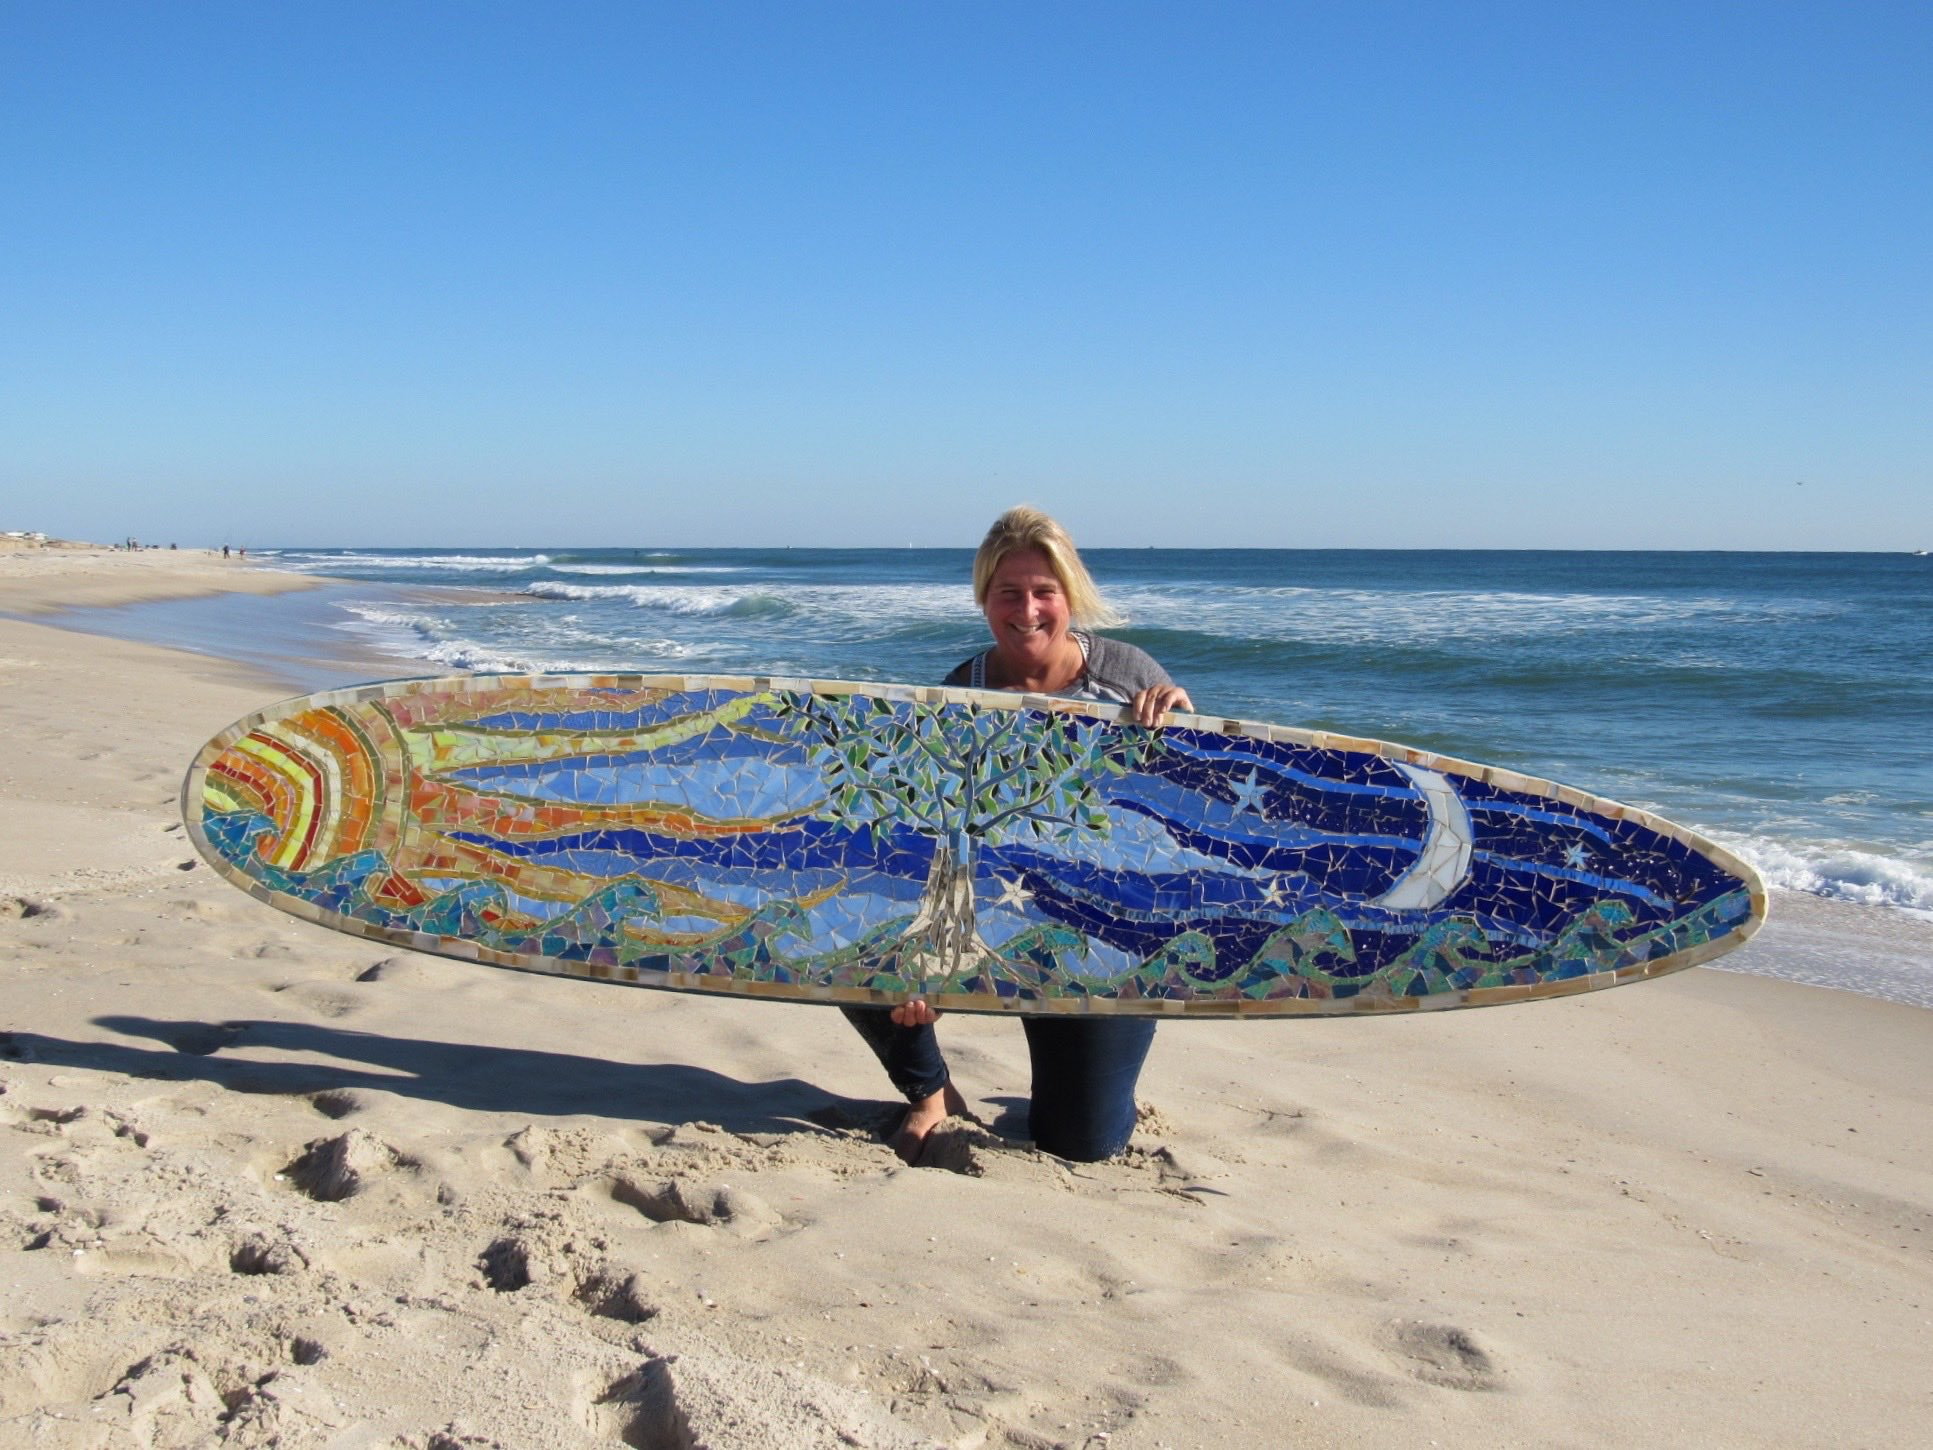 Got some old boards in your quiver? Have us repurpose them into beautiful art!